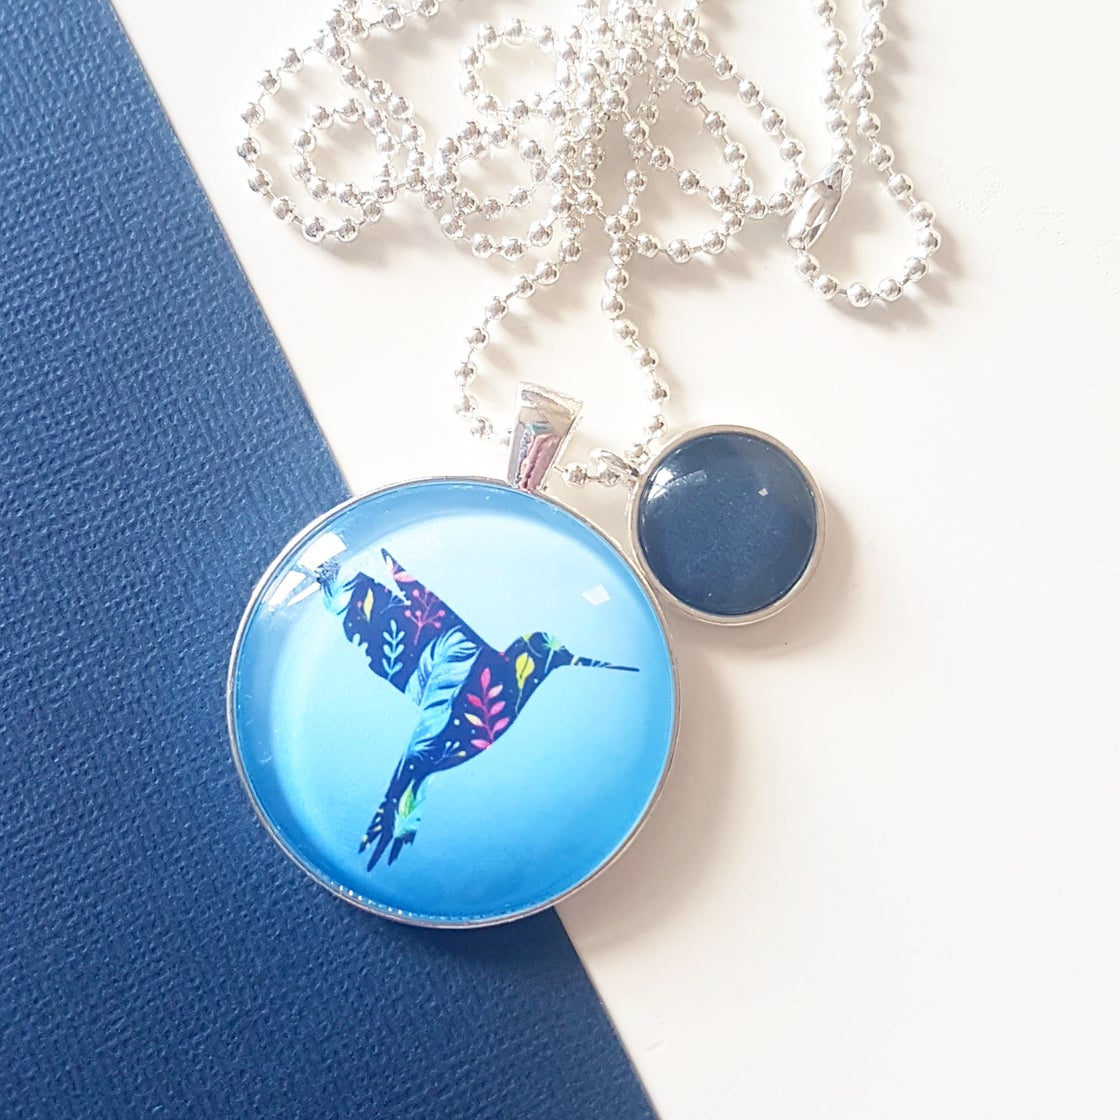 Image of 1.5inch pendant - Floral Hummingbird